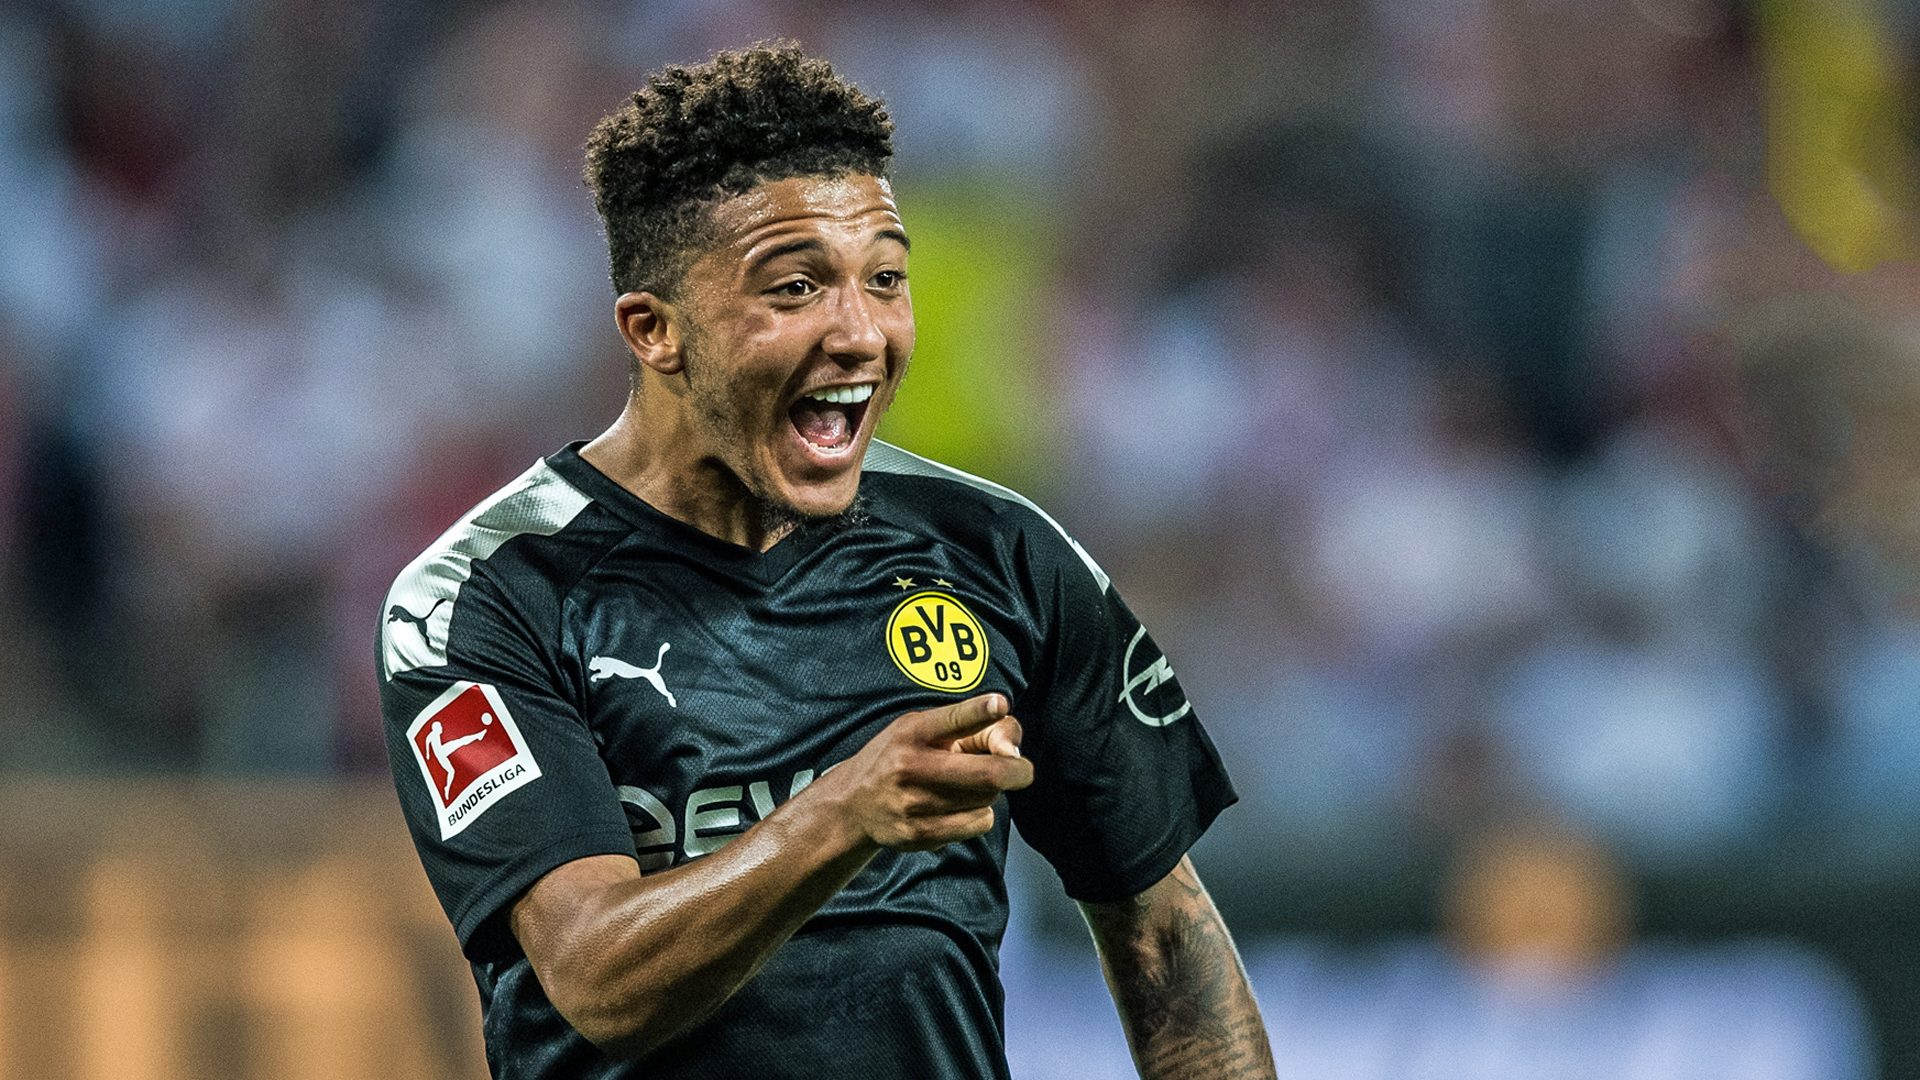 Bundesliga Jadon Sancho Is The Borussia Dortmund Teenager One Of The Best Players In The World